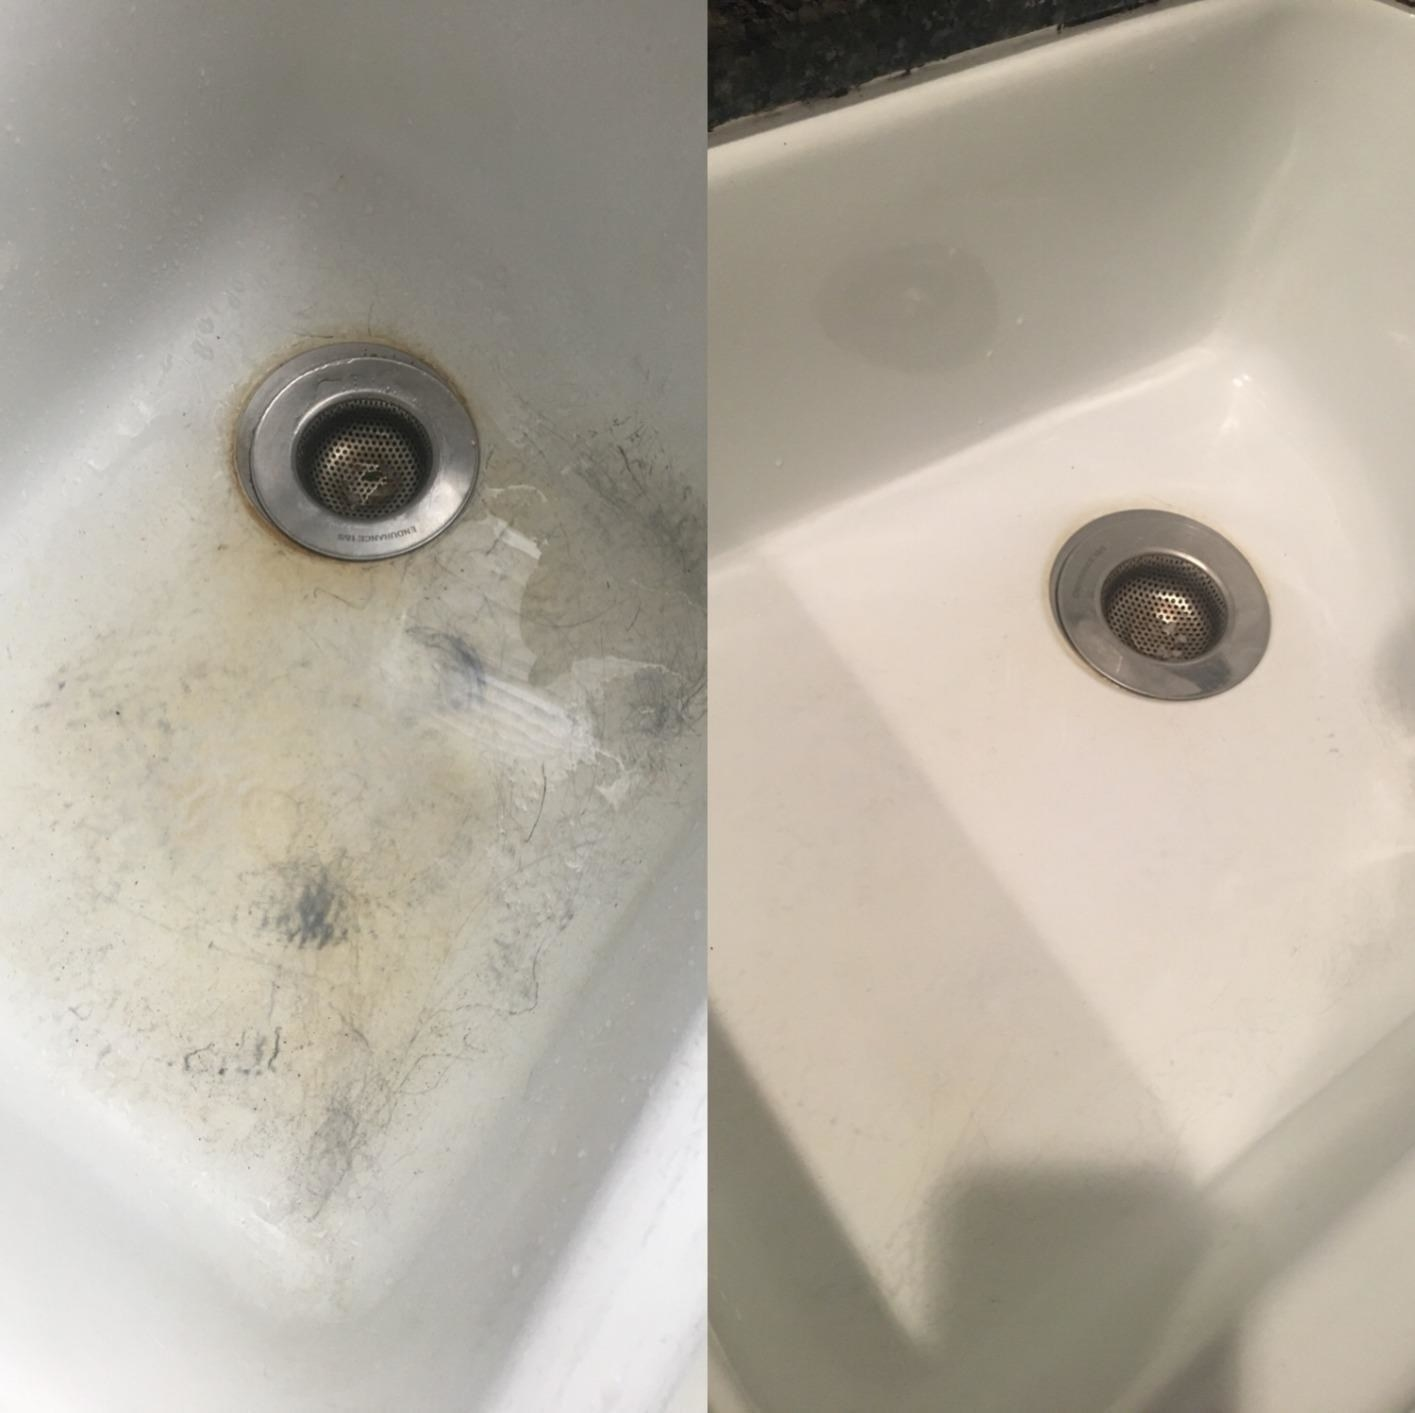 Reviewer photos showing a porcelain sink before and after using the cleanser. The stains and scratches are completely removed